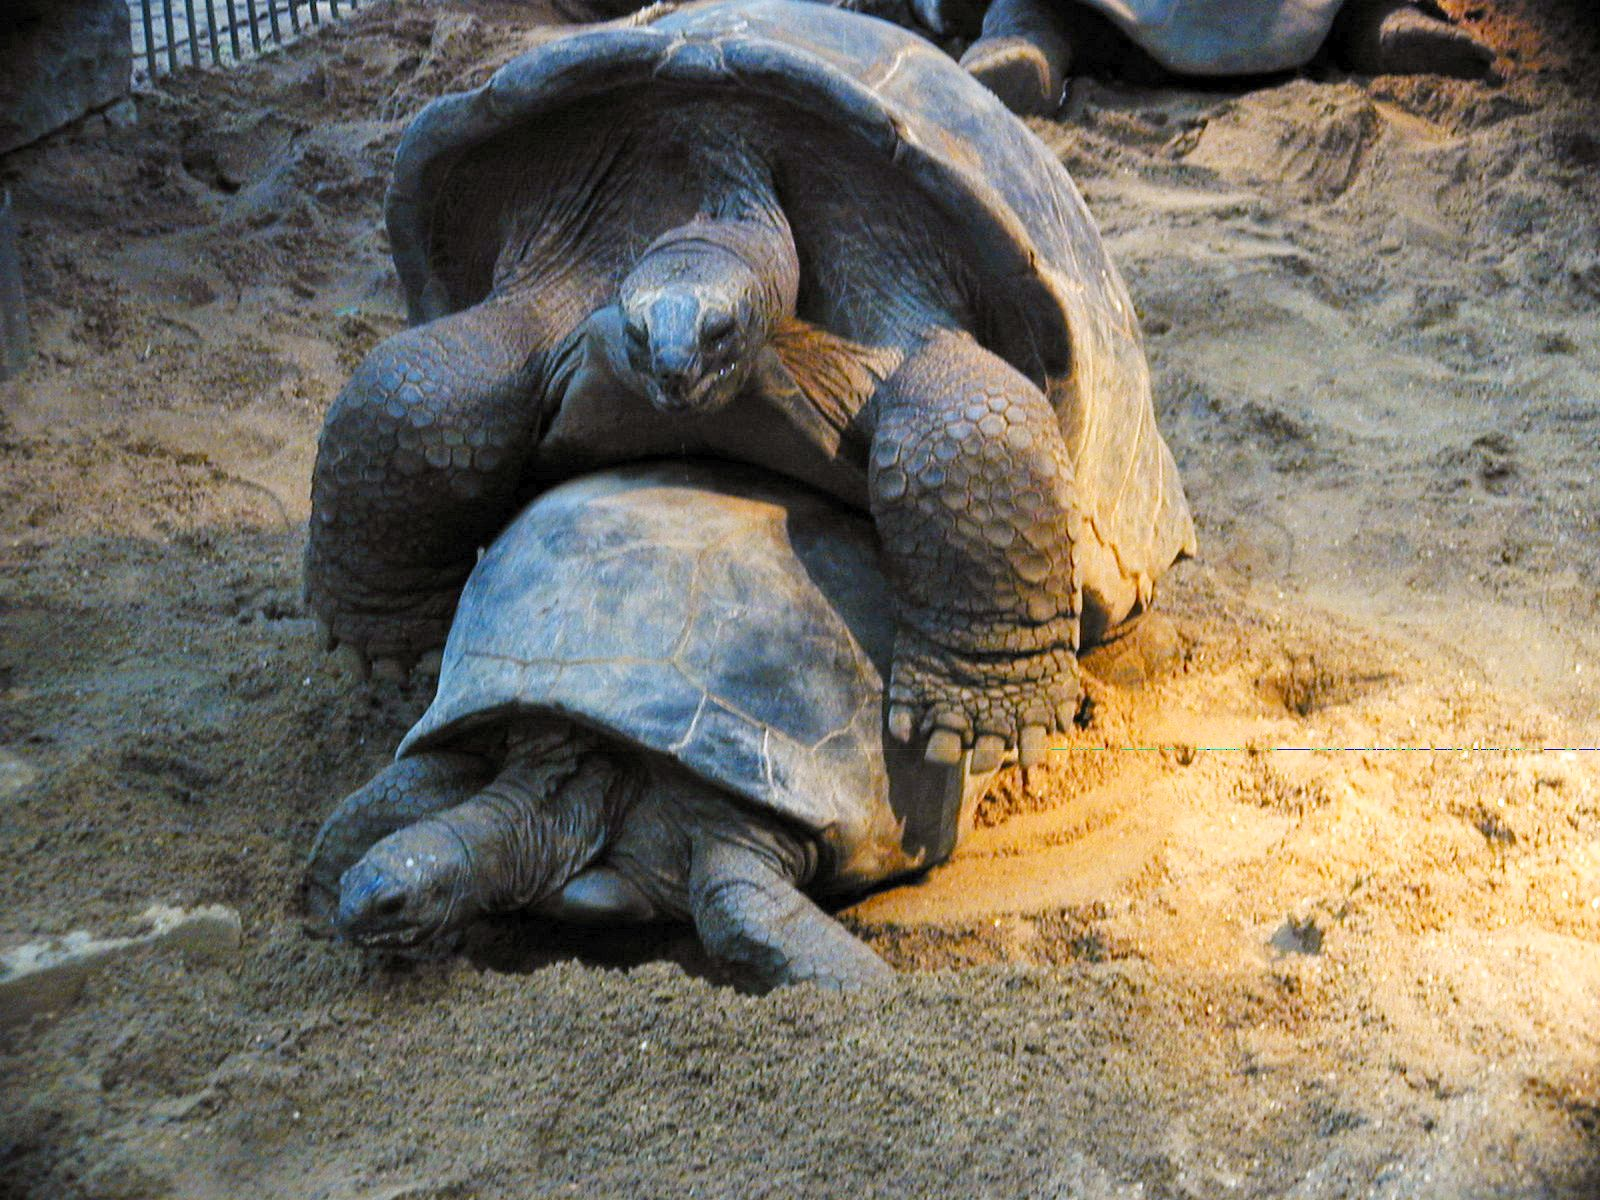 turtels making love sex (always good for the hits:)) animals sea animals armor